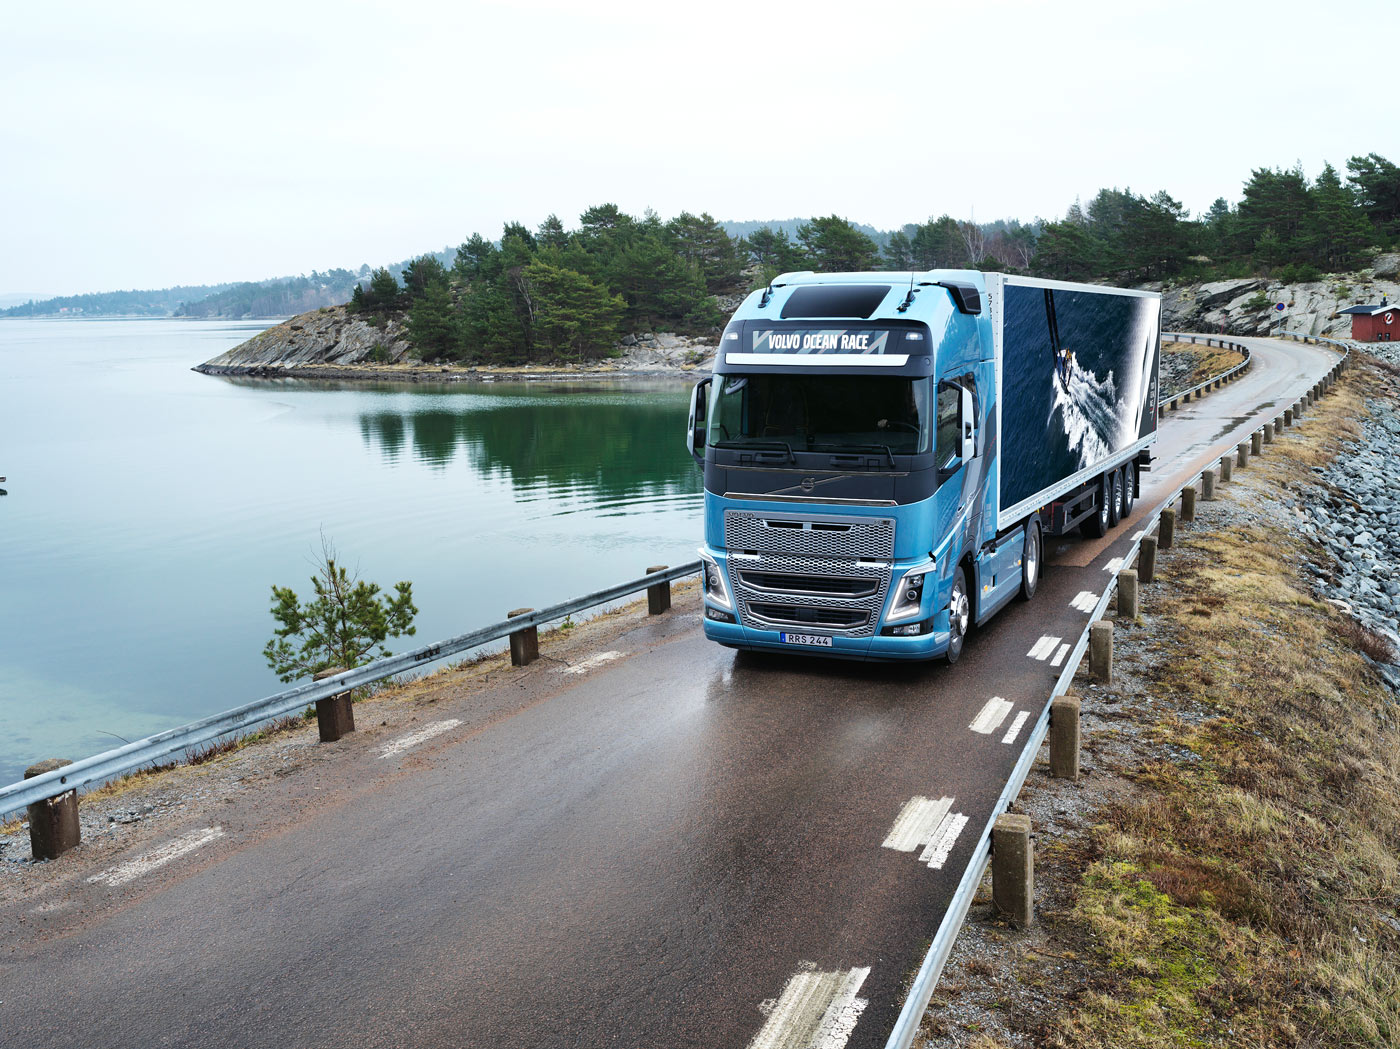 2018 volvo fh. unique volvo fh volvo ocean race 20172018 and 2018 volvo fh e